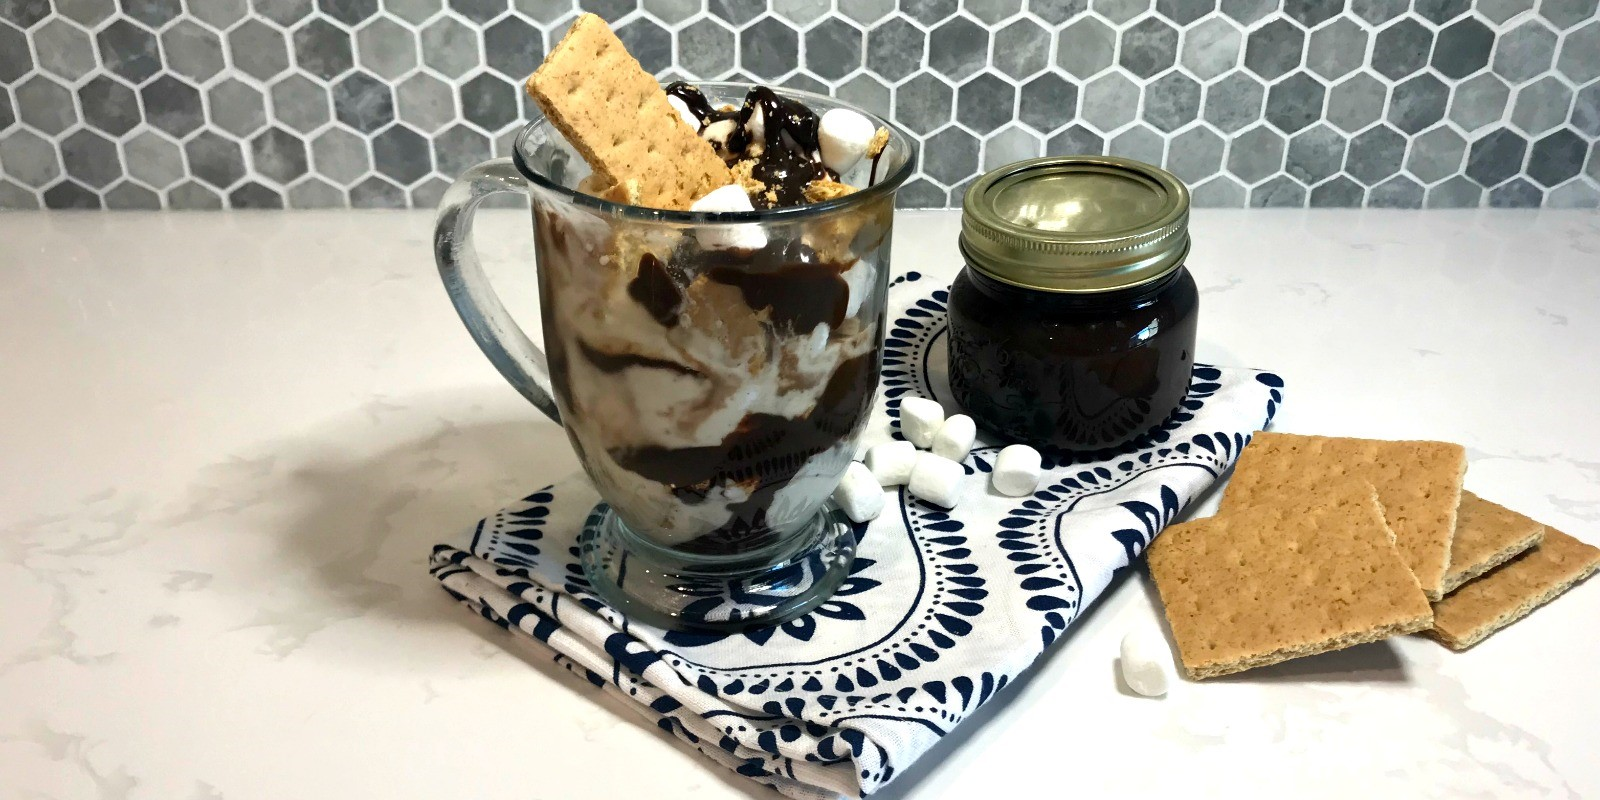 Smore's Sundae with Hot Chocolate Fudge Sauce